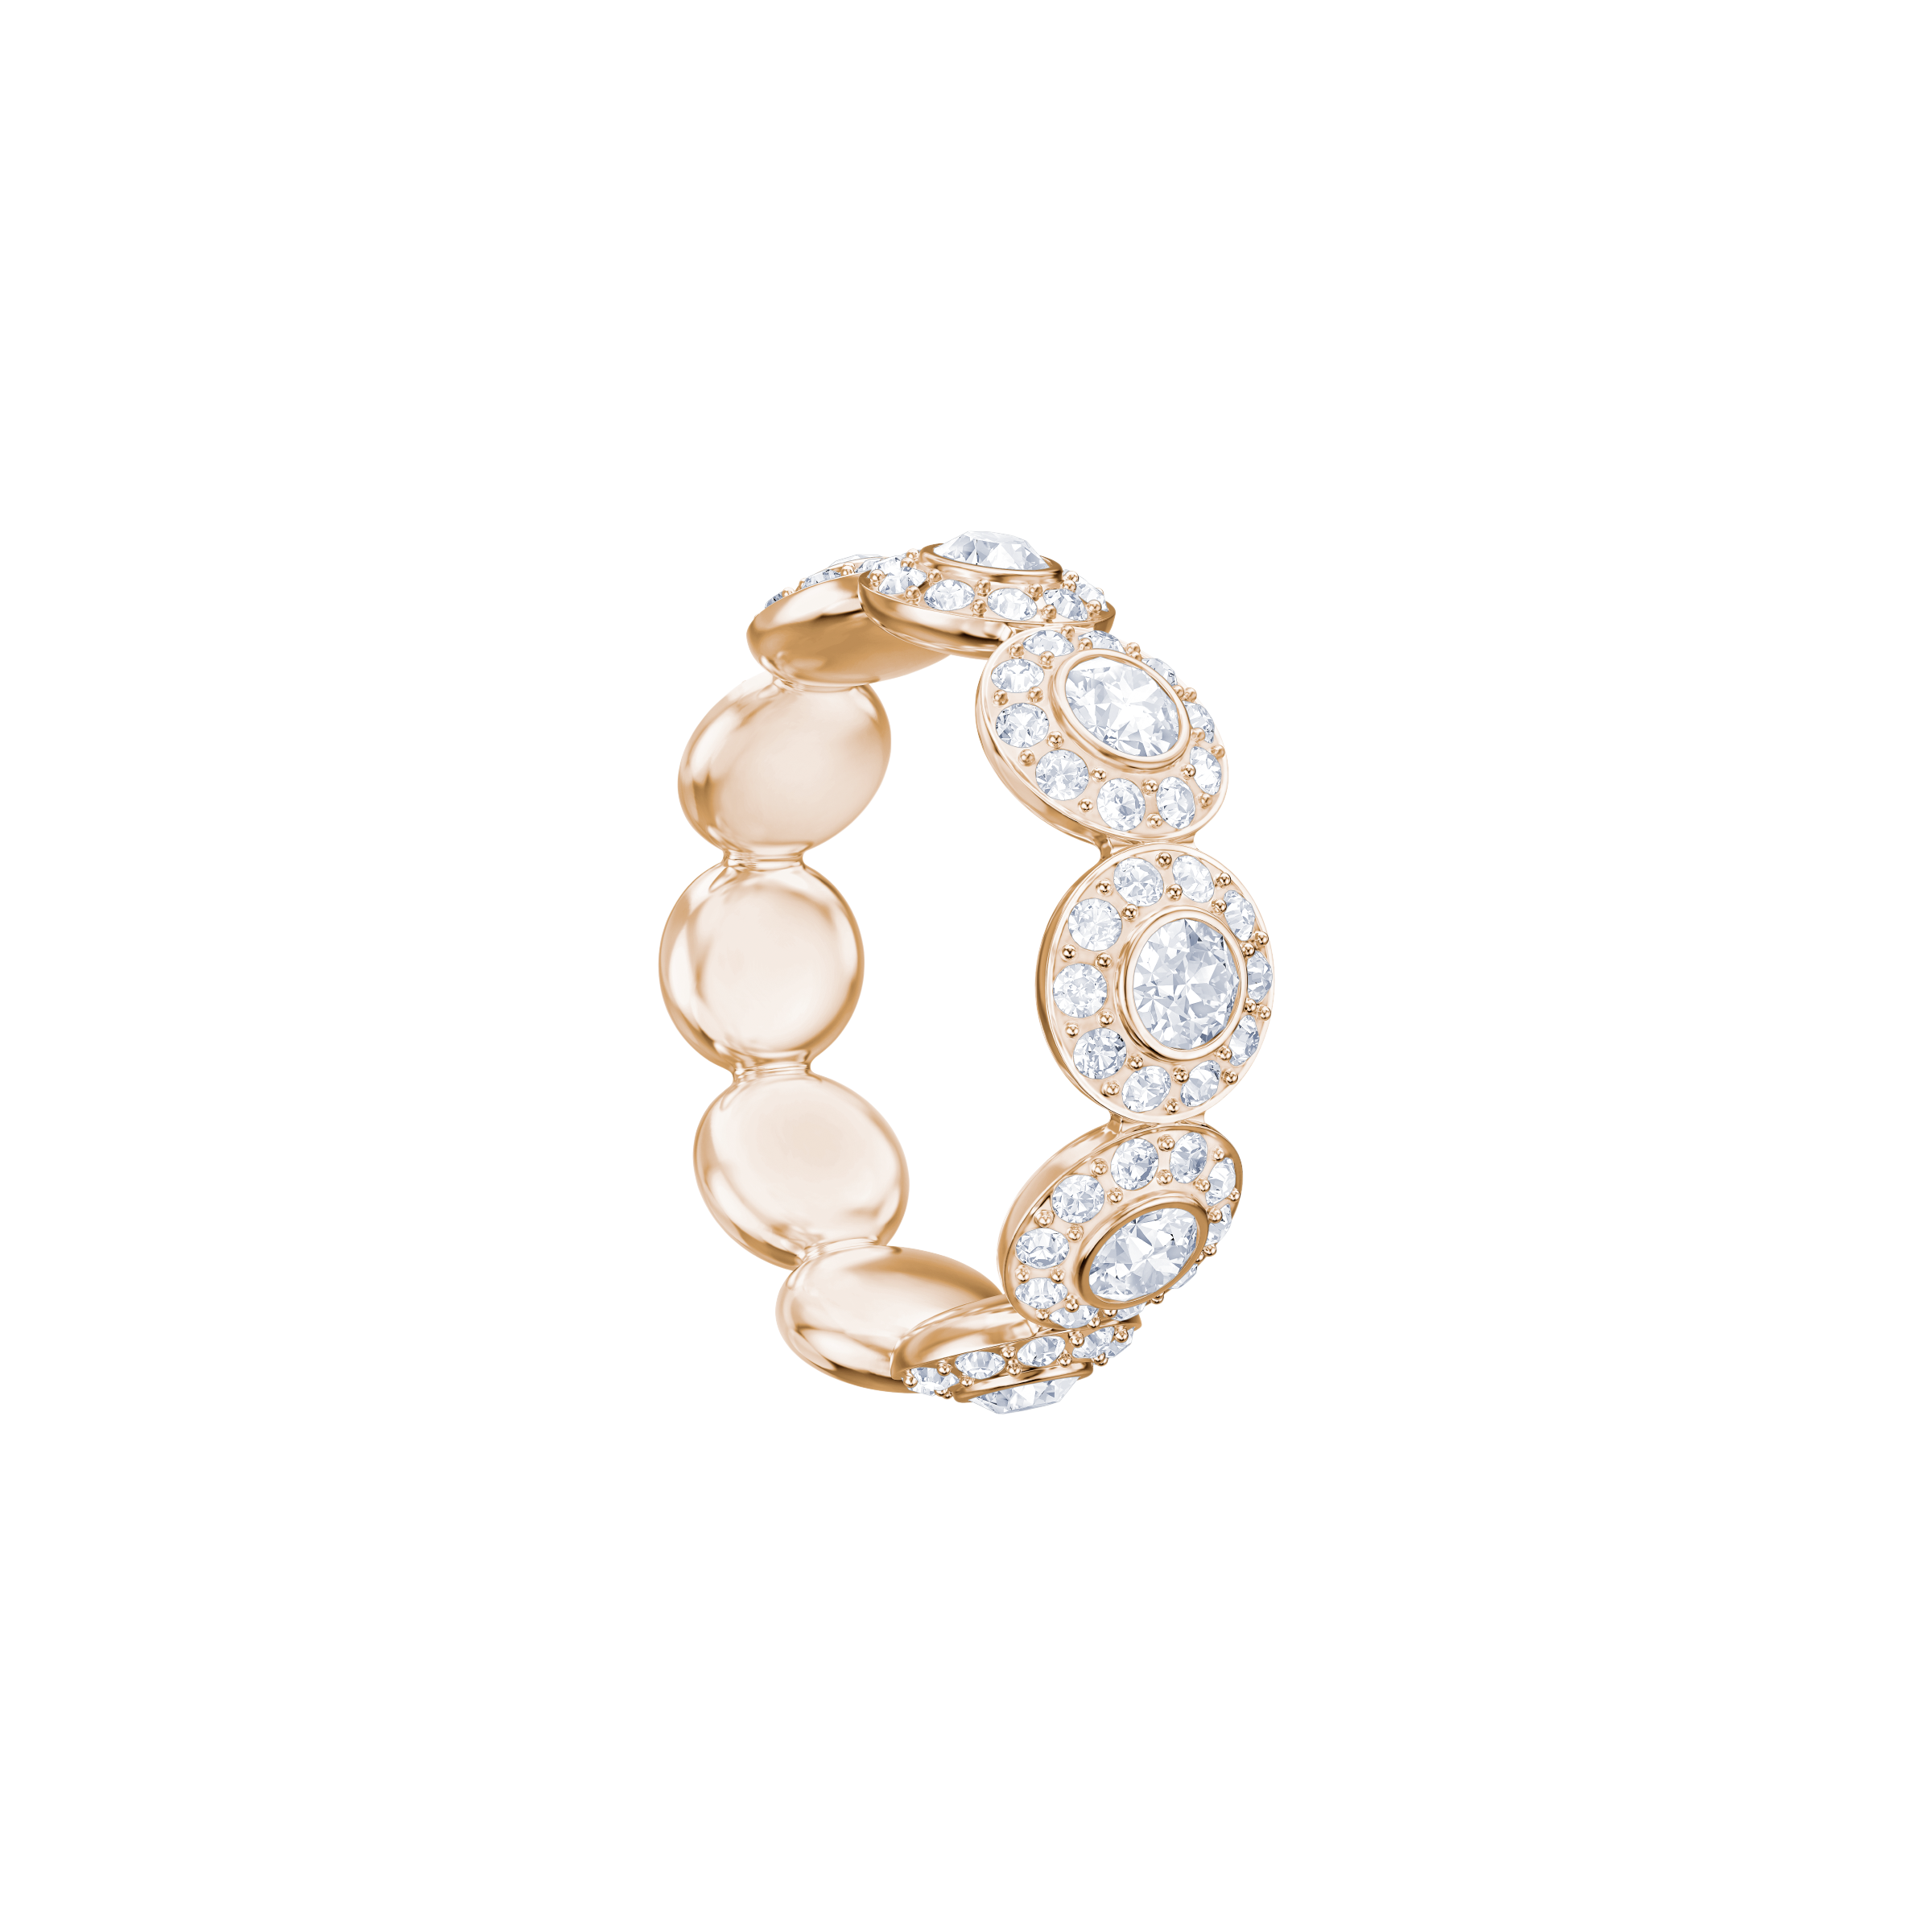 Angelic Ring, White, Rose Gold Plating